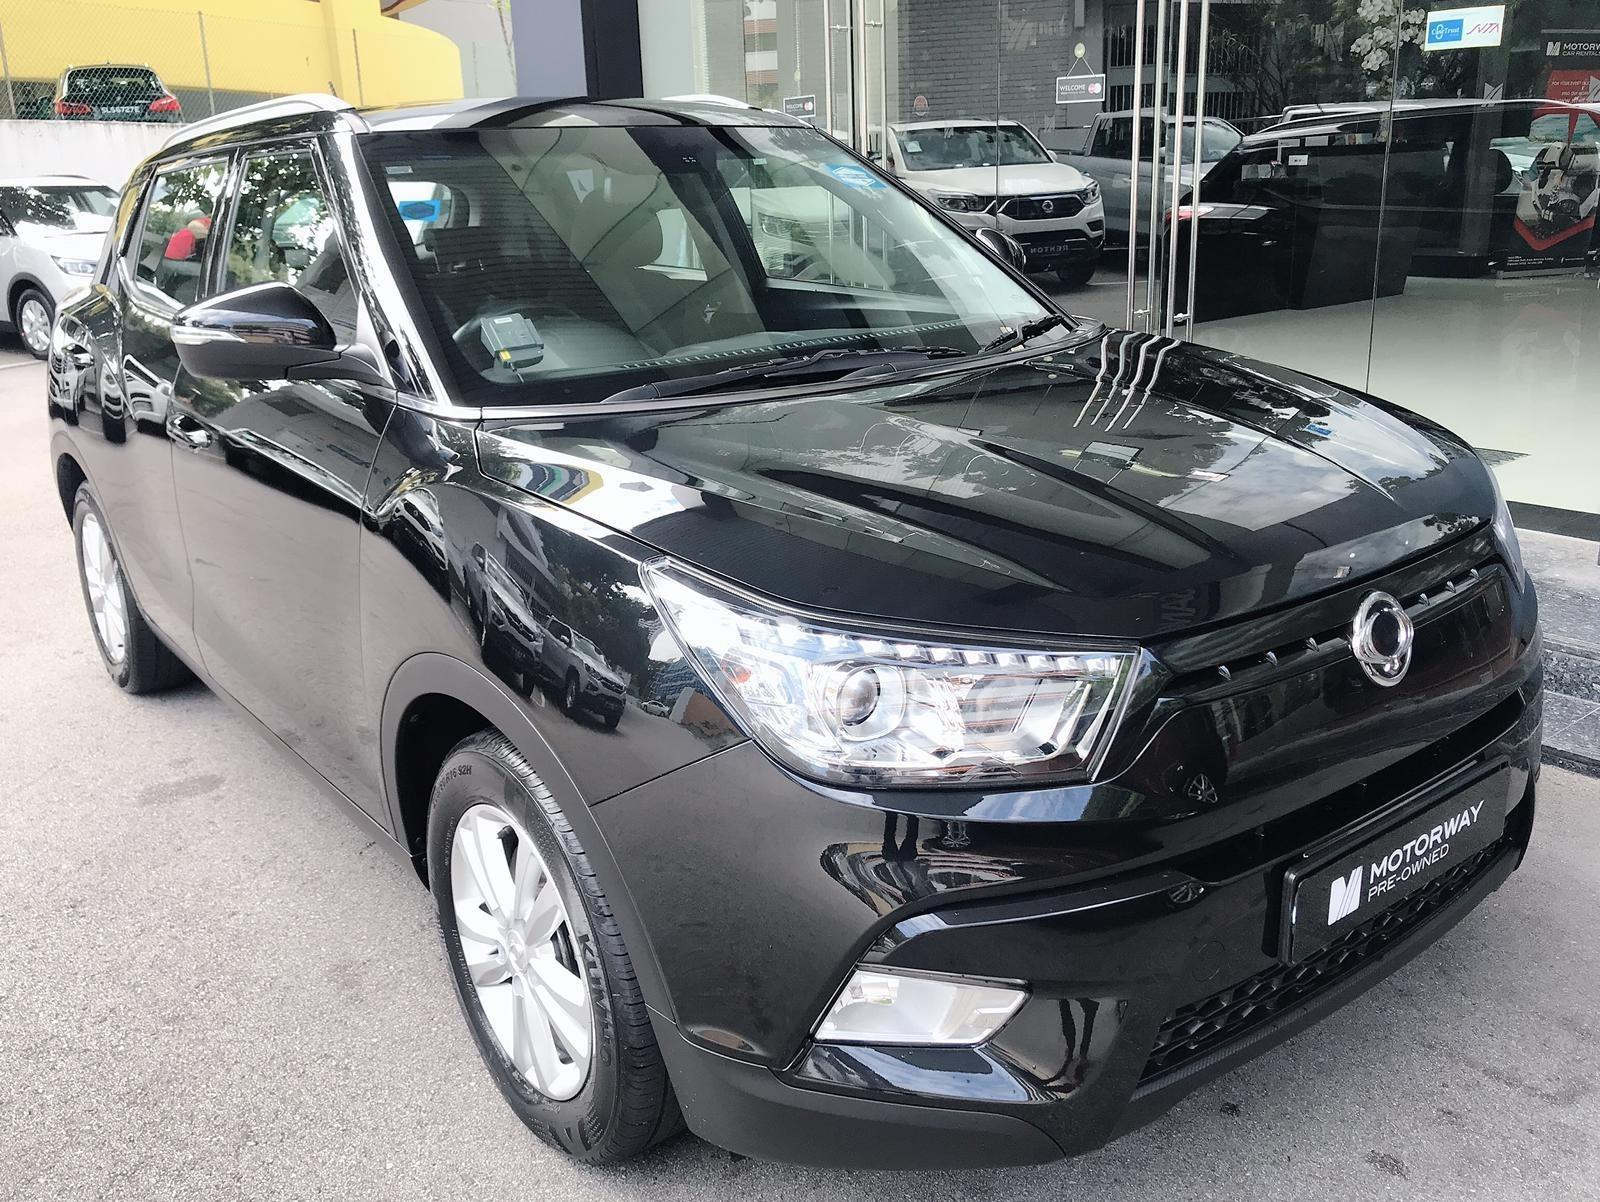 SSANGYONG TIVOLI 1.6G 6AT ABS 2WD E4